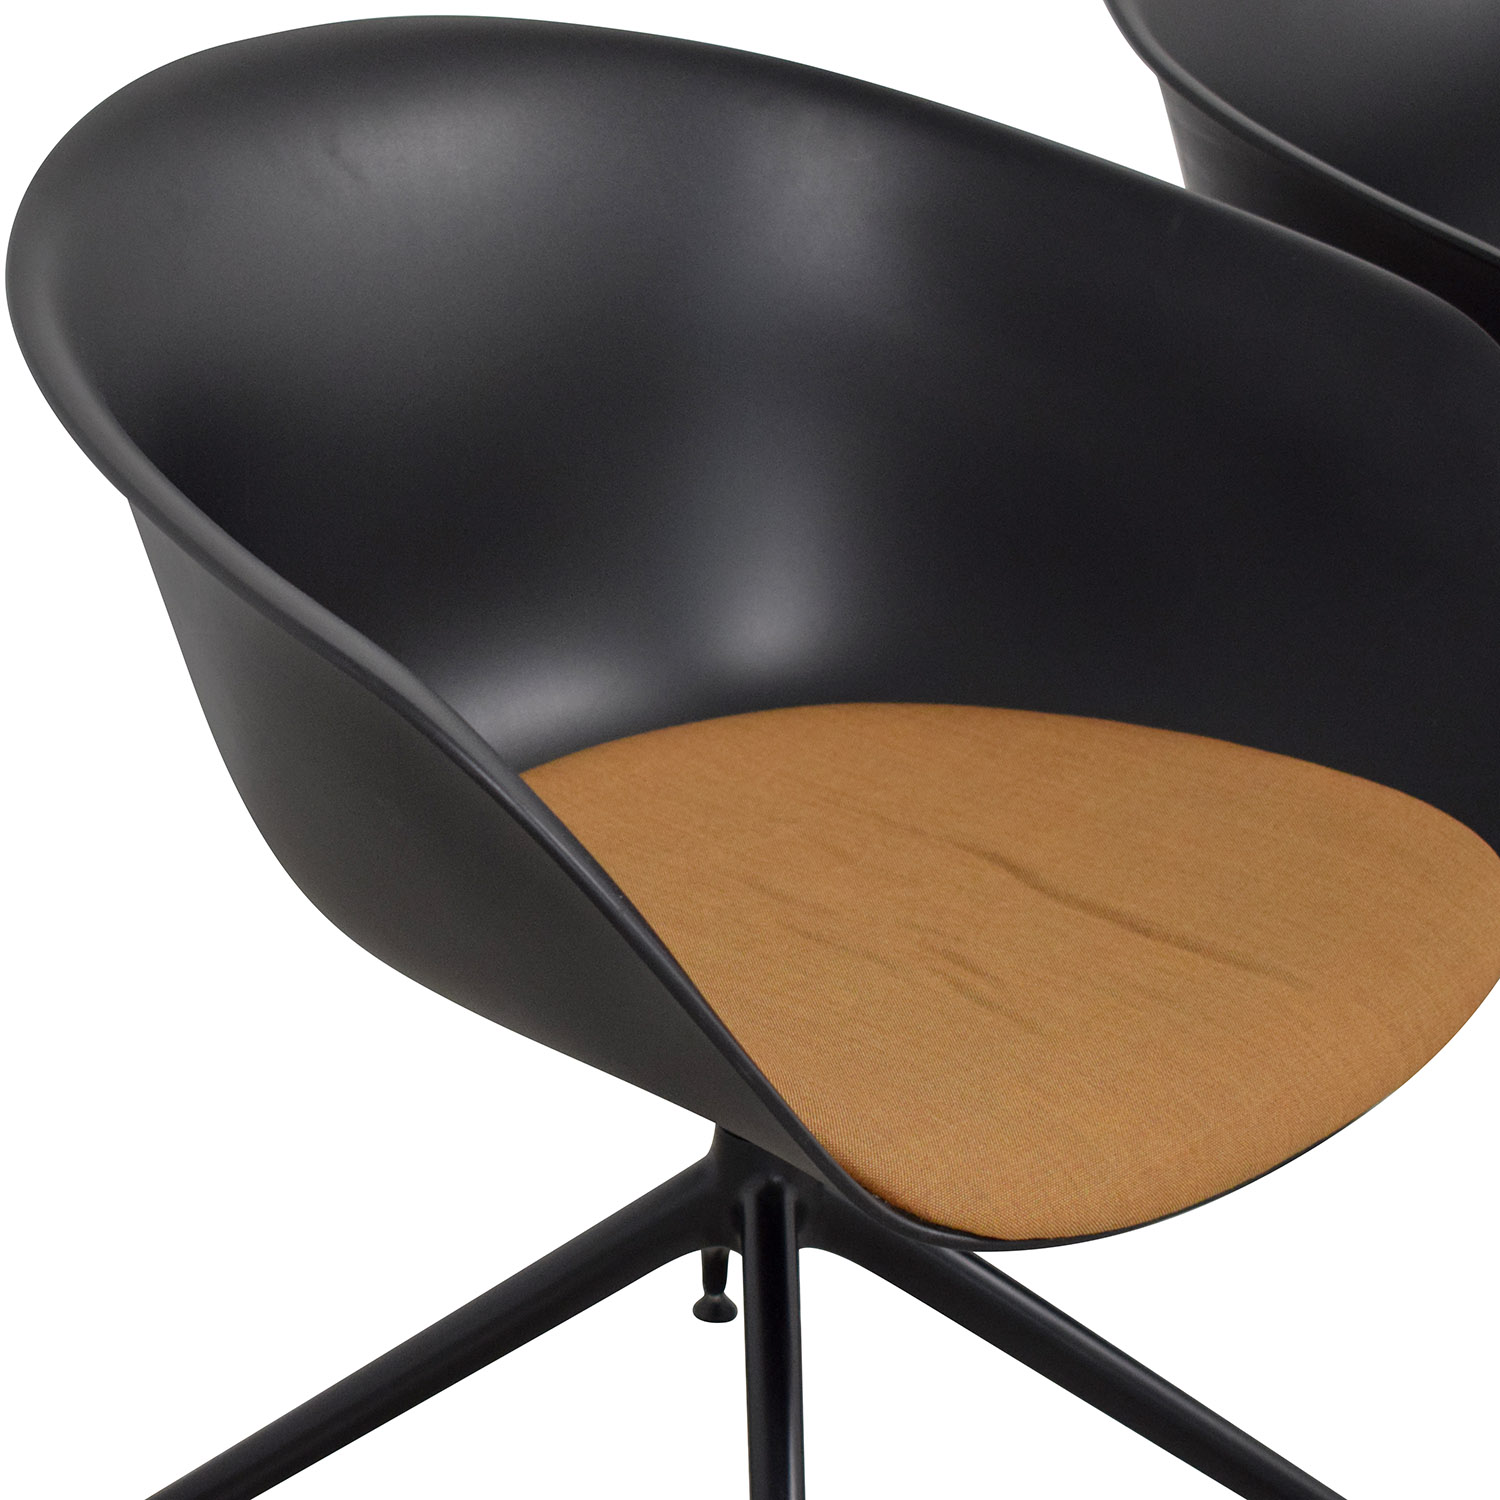 Arper Arper Duna Dining Chairs for sale